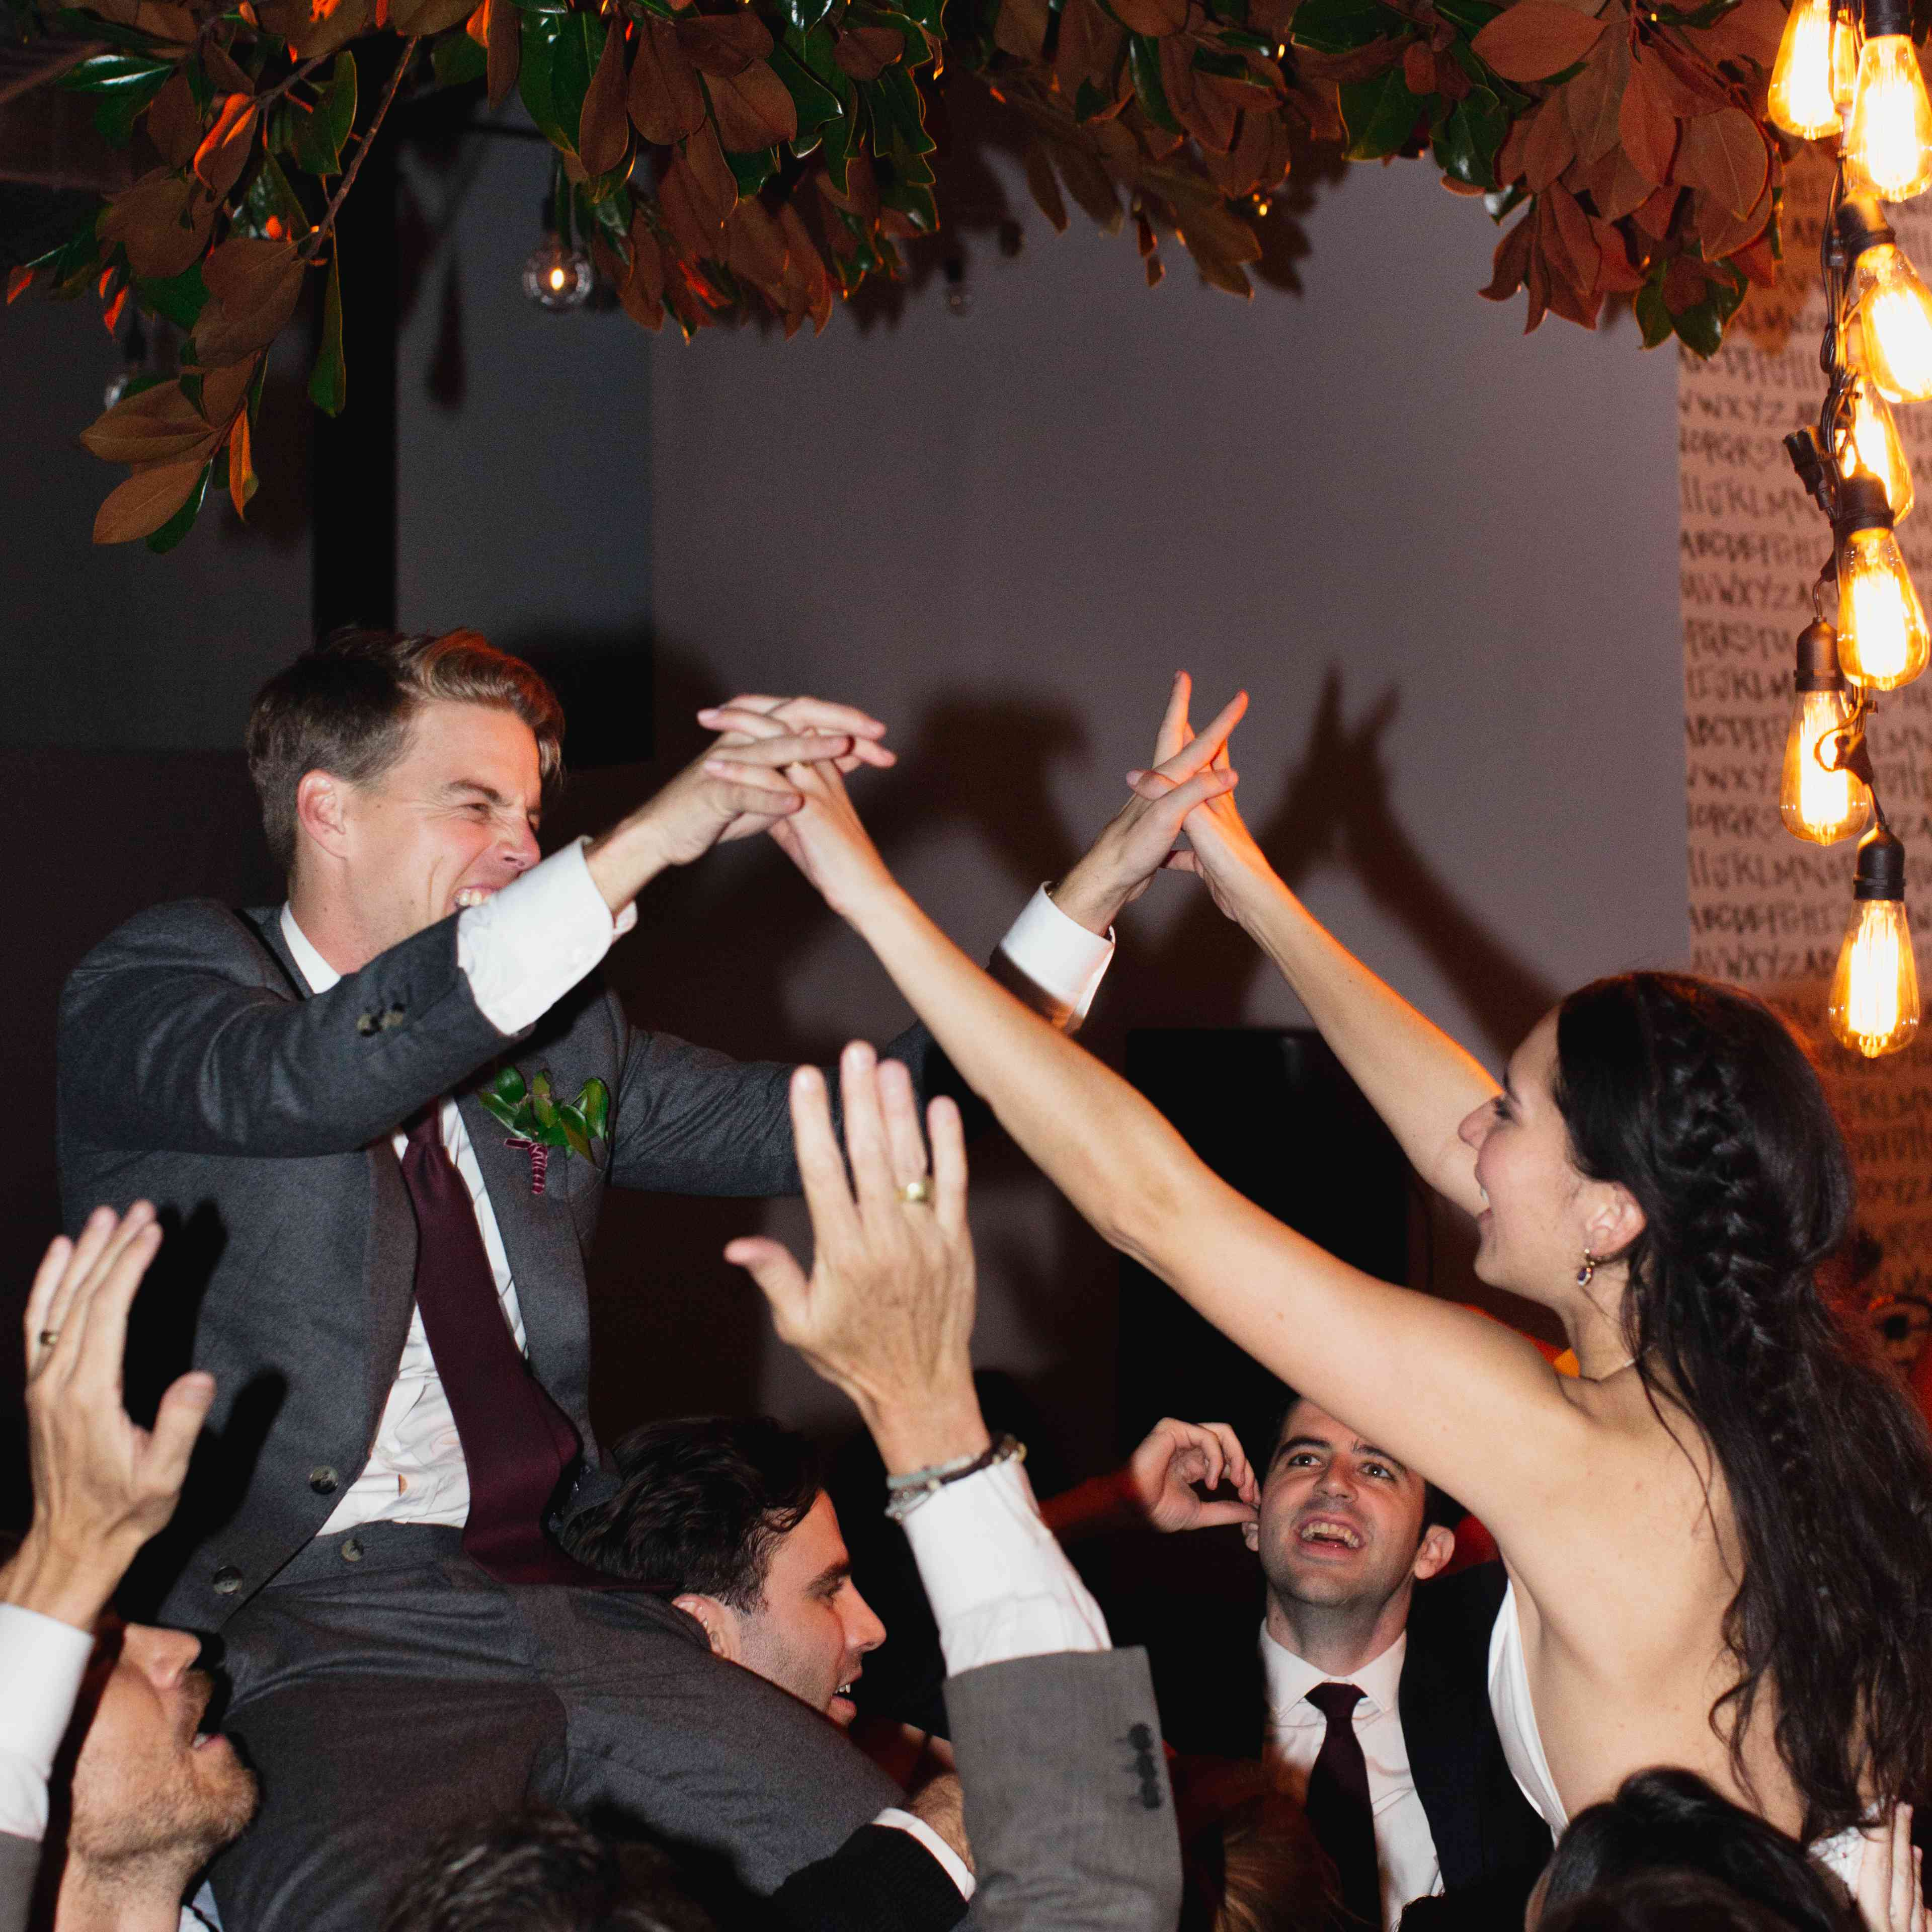 Bride and groom lifted up during dance